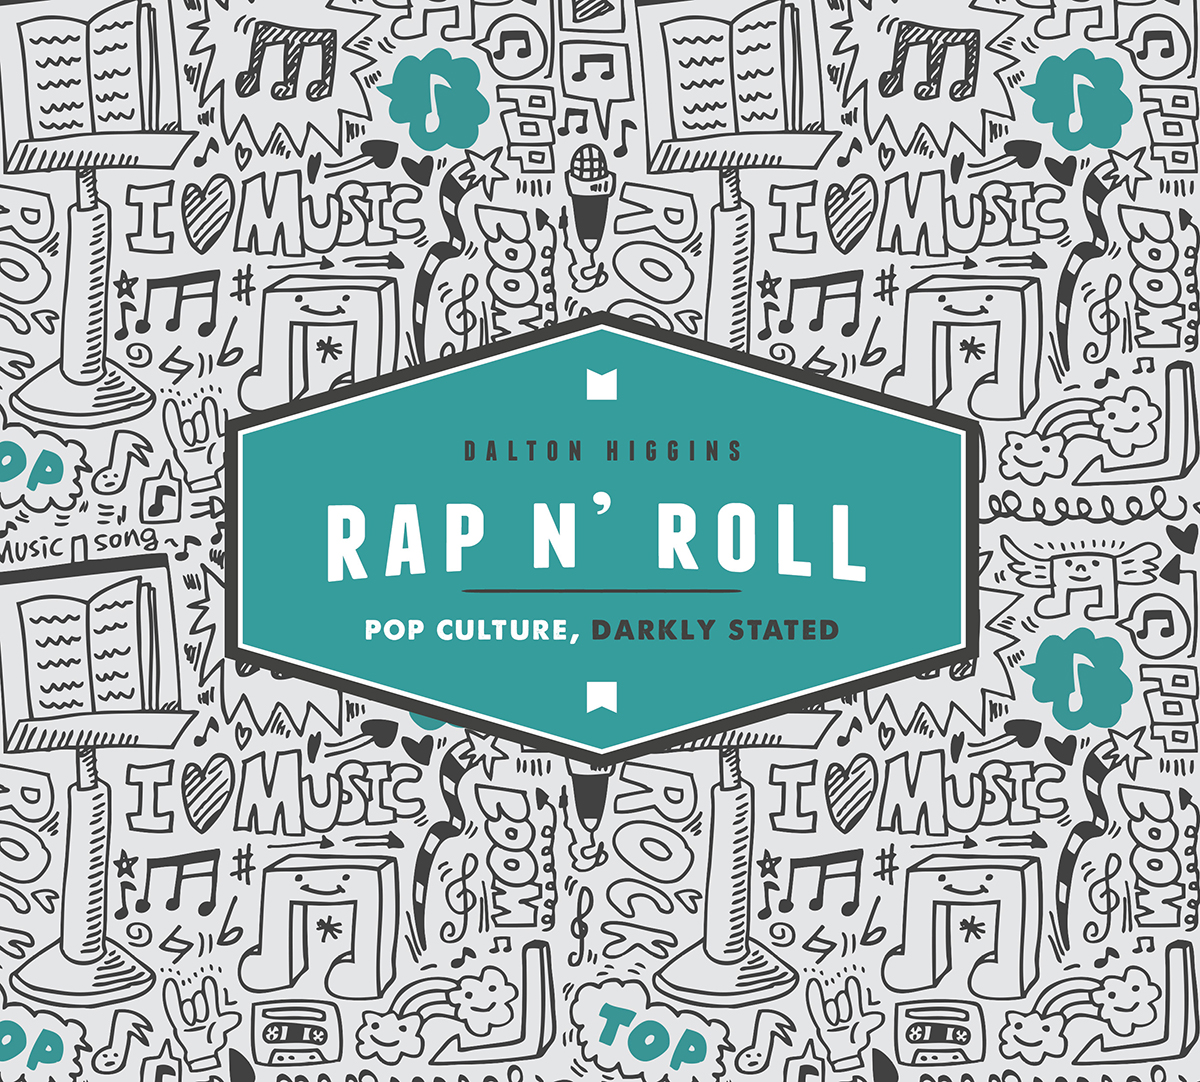 music novella page 6 novel ideas author dalton higgins launches his sixth book of pop culture essays rap n roll